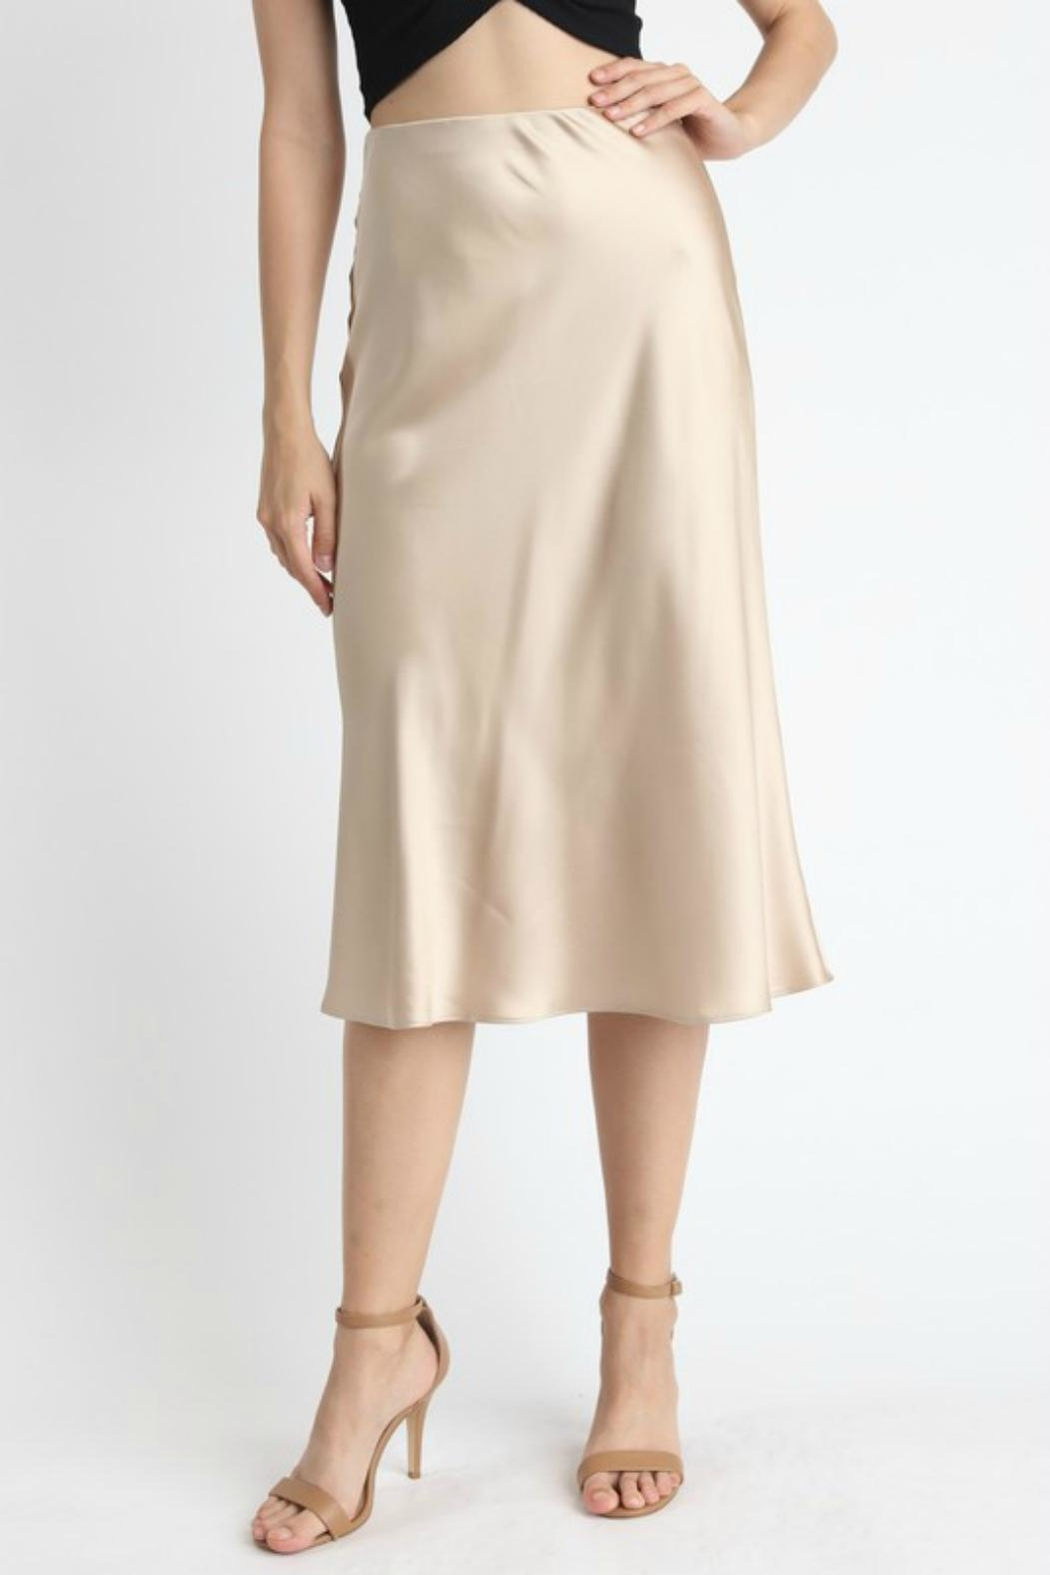 Pretty Little Things Satin Midi Skirt - Front Full Image